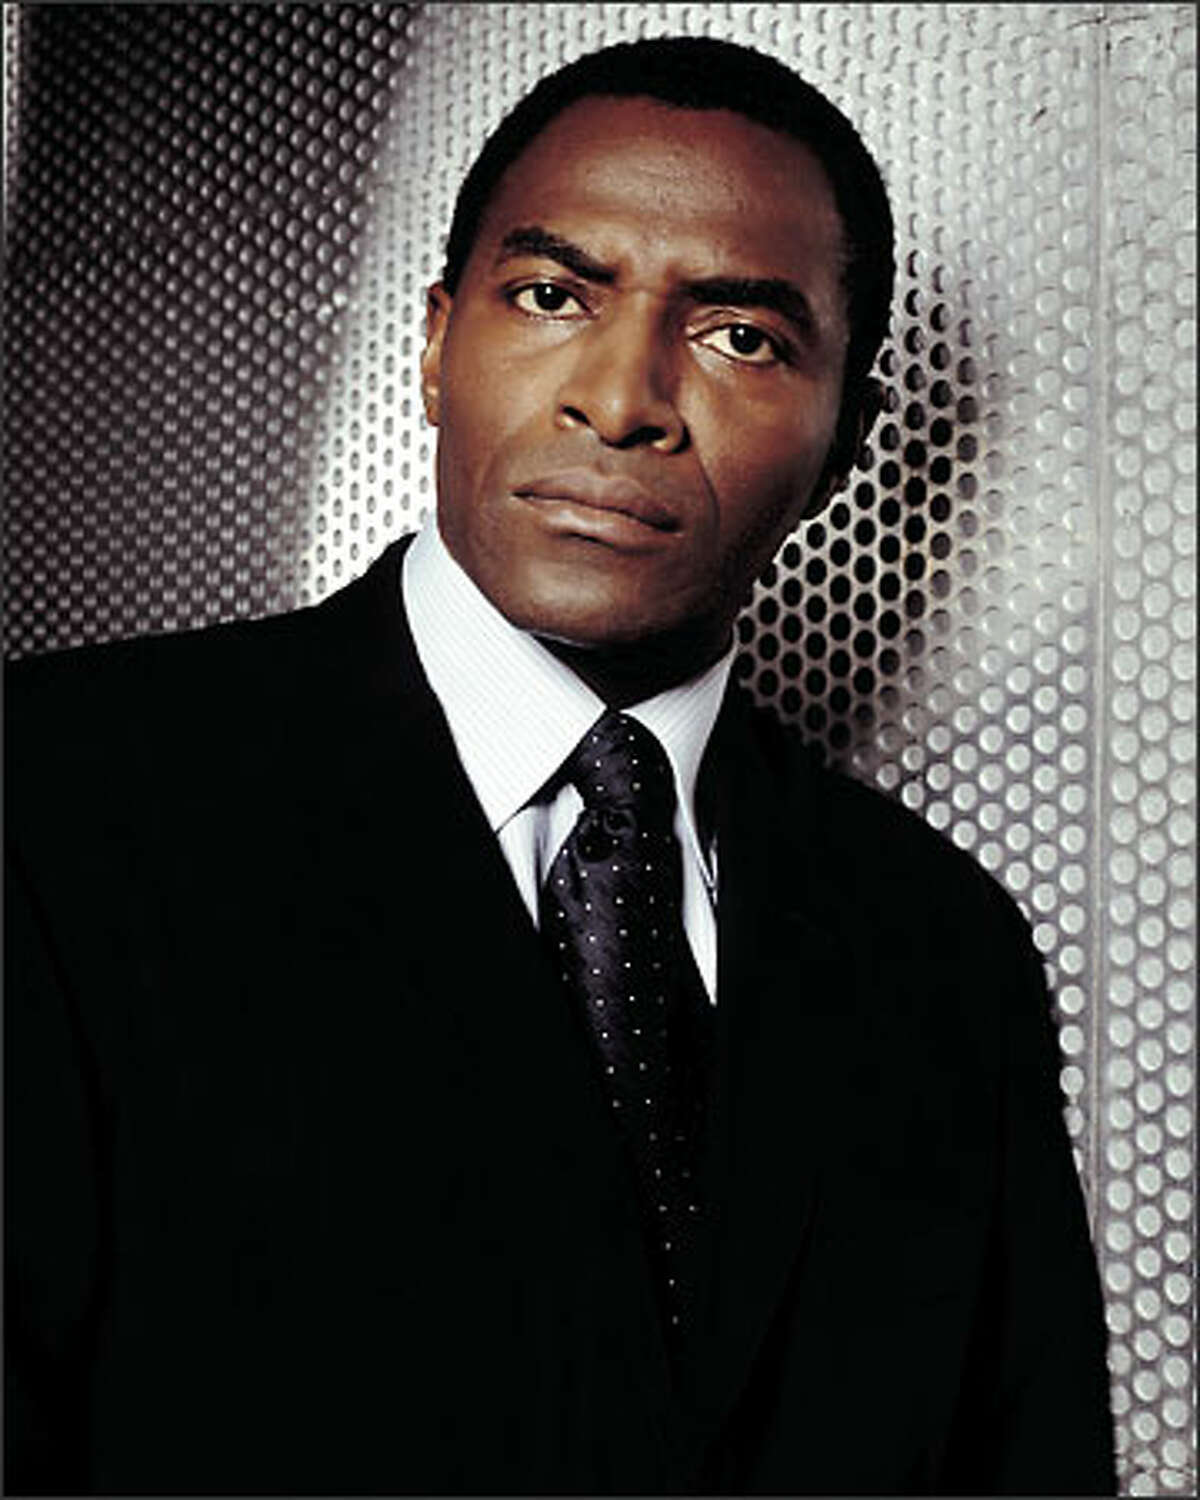 Sydney's one-time partner, Marcus Dixon (Carl Lumbly), has moved up the ladder at the CIA.